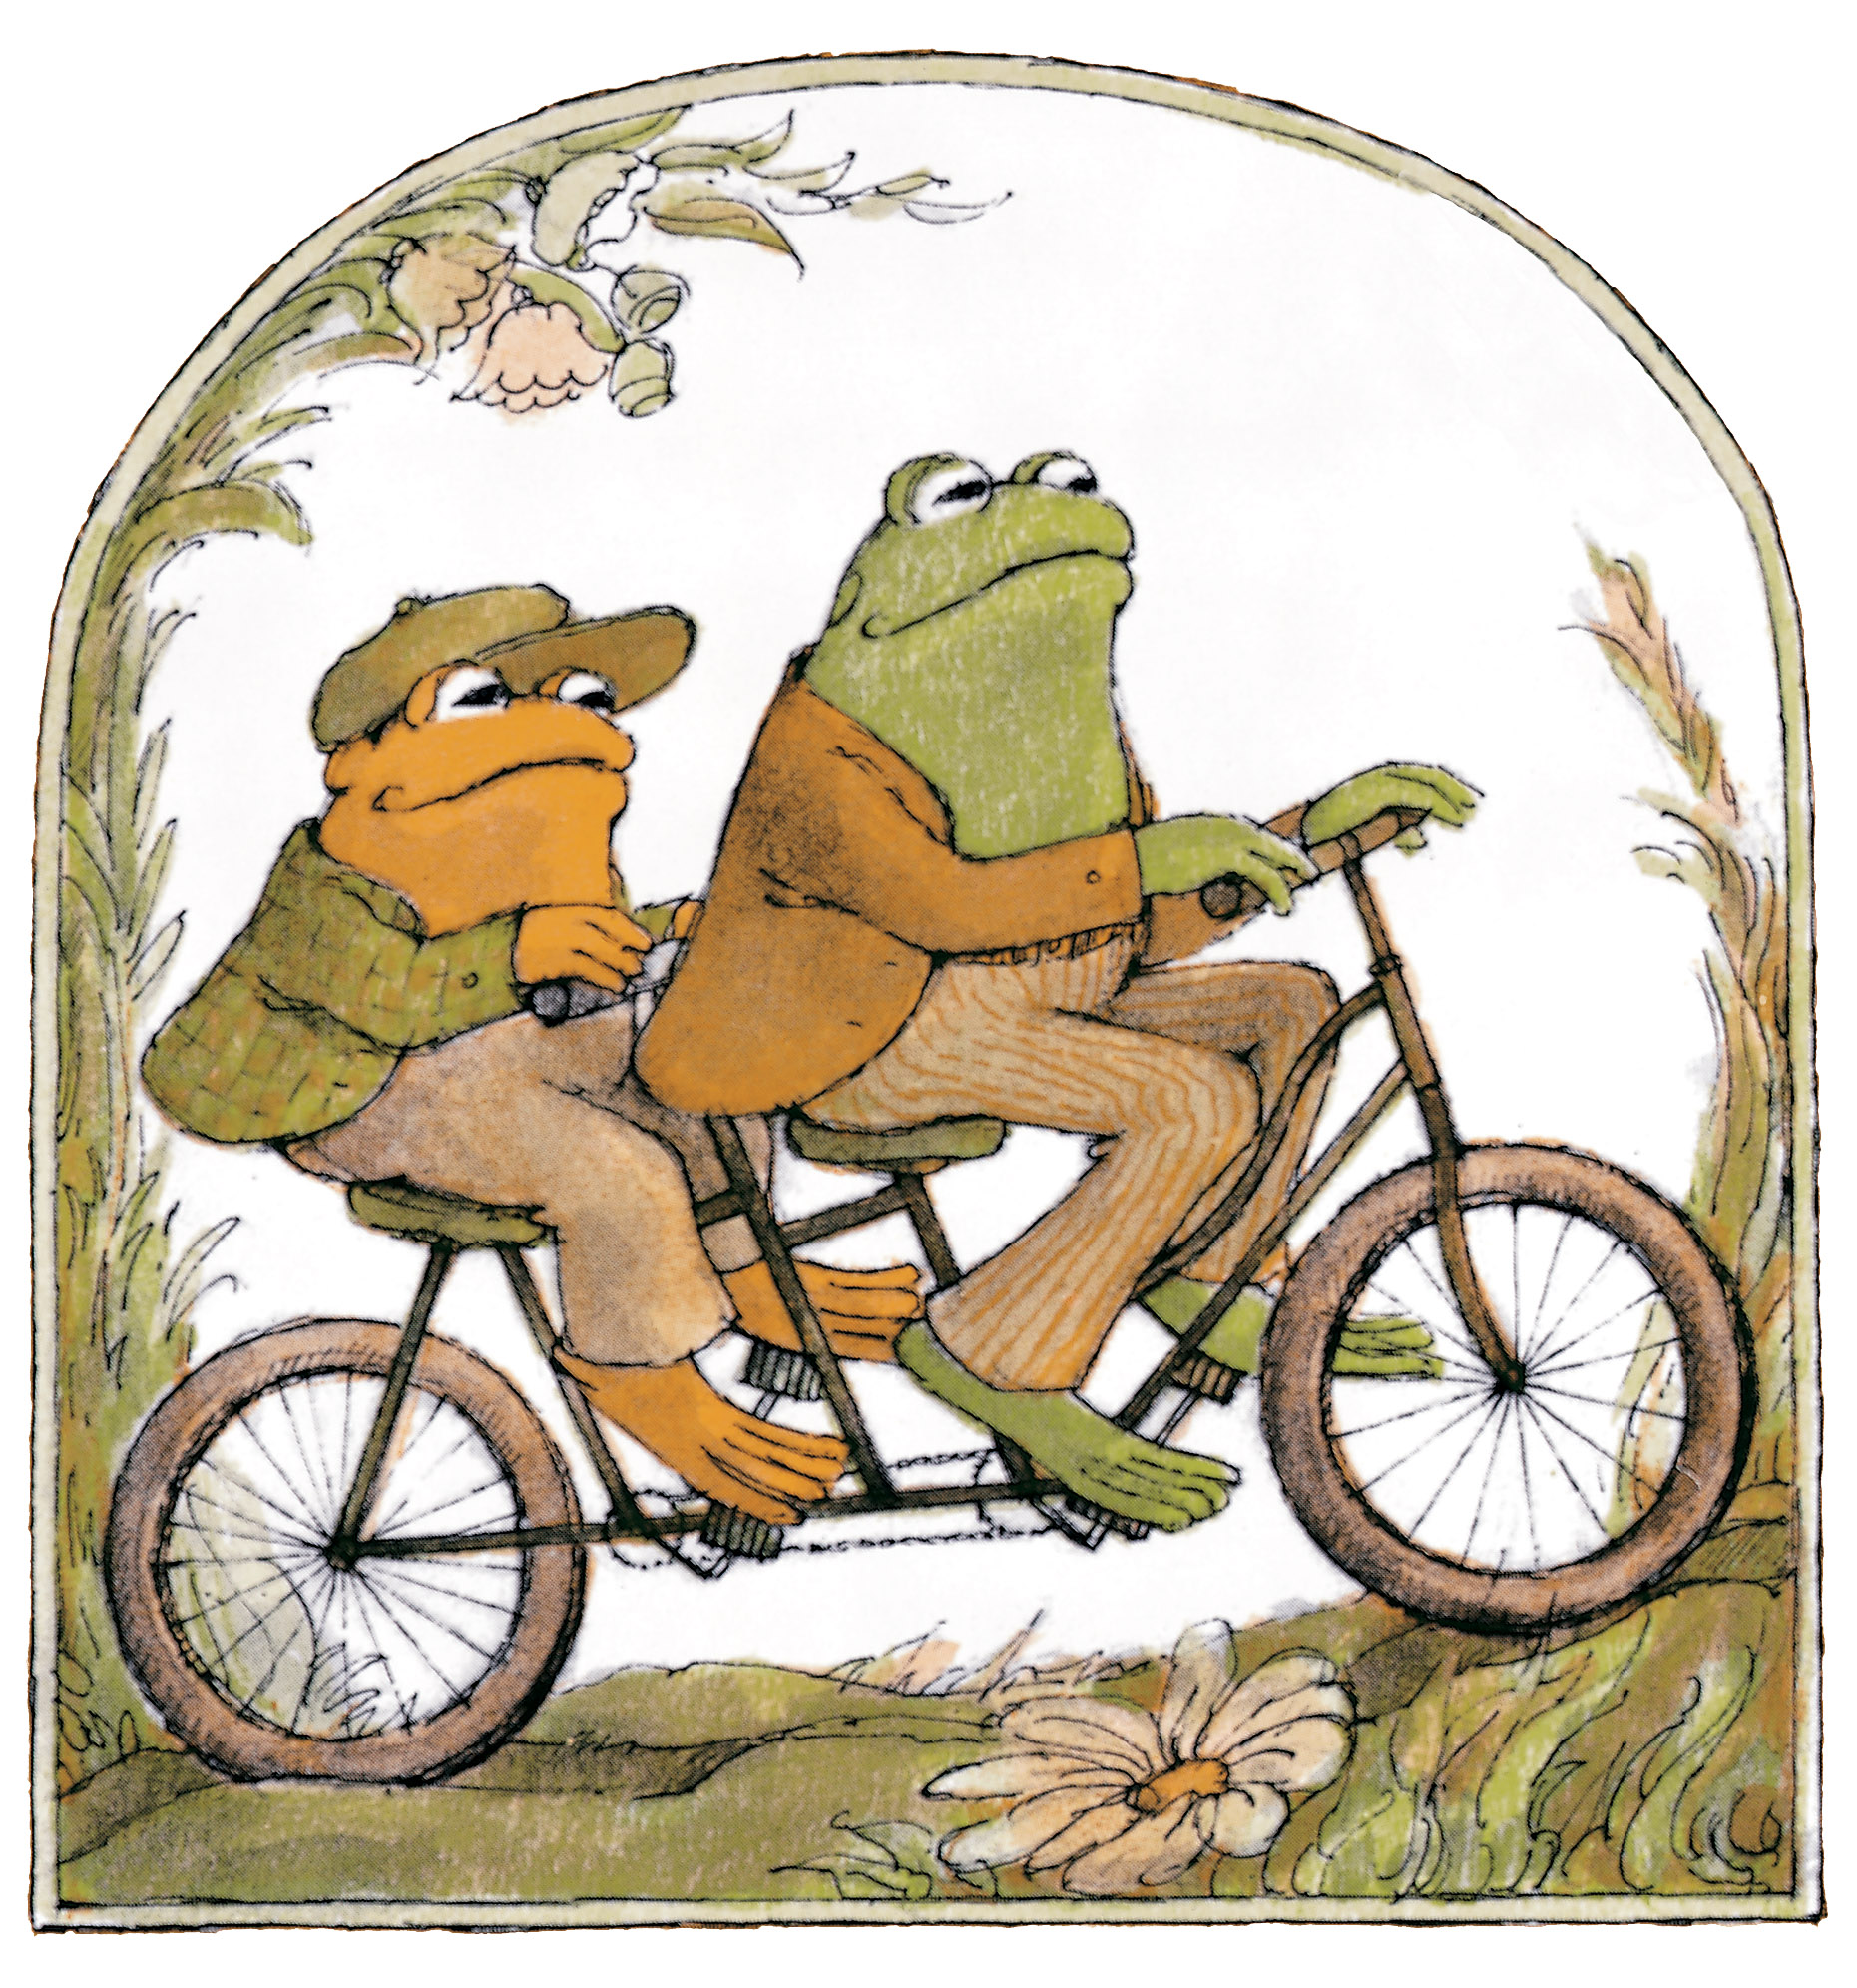 All Frog And Toad Books